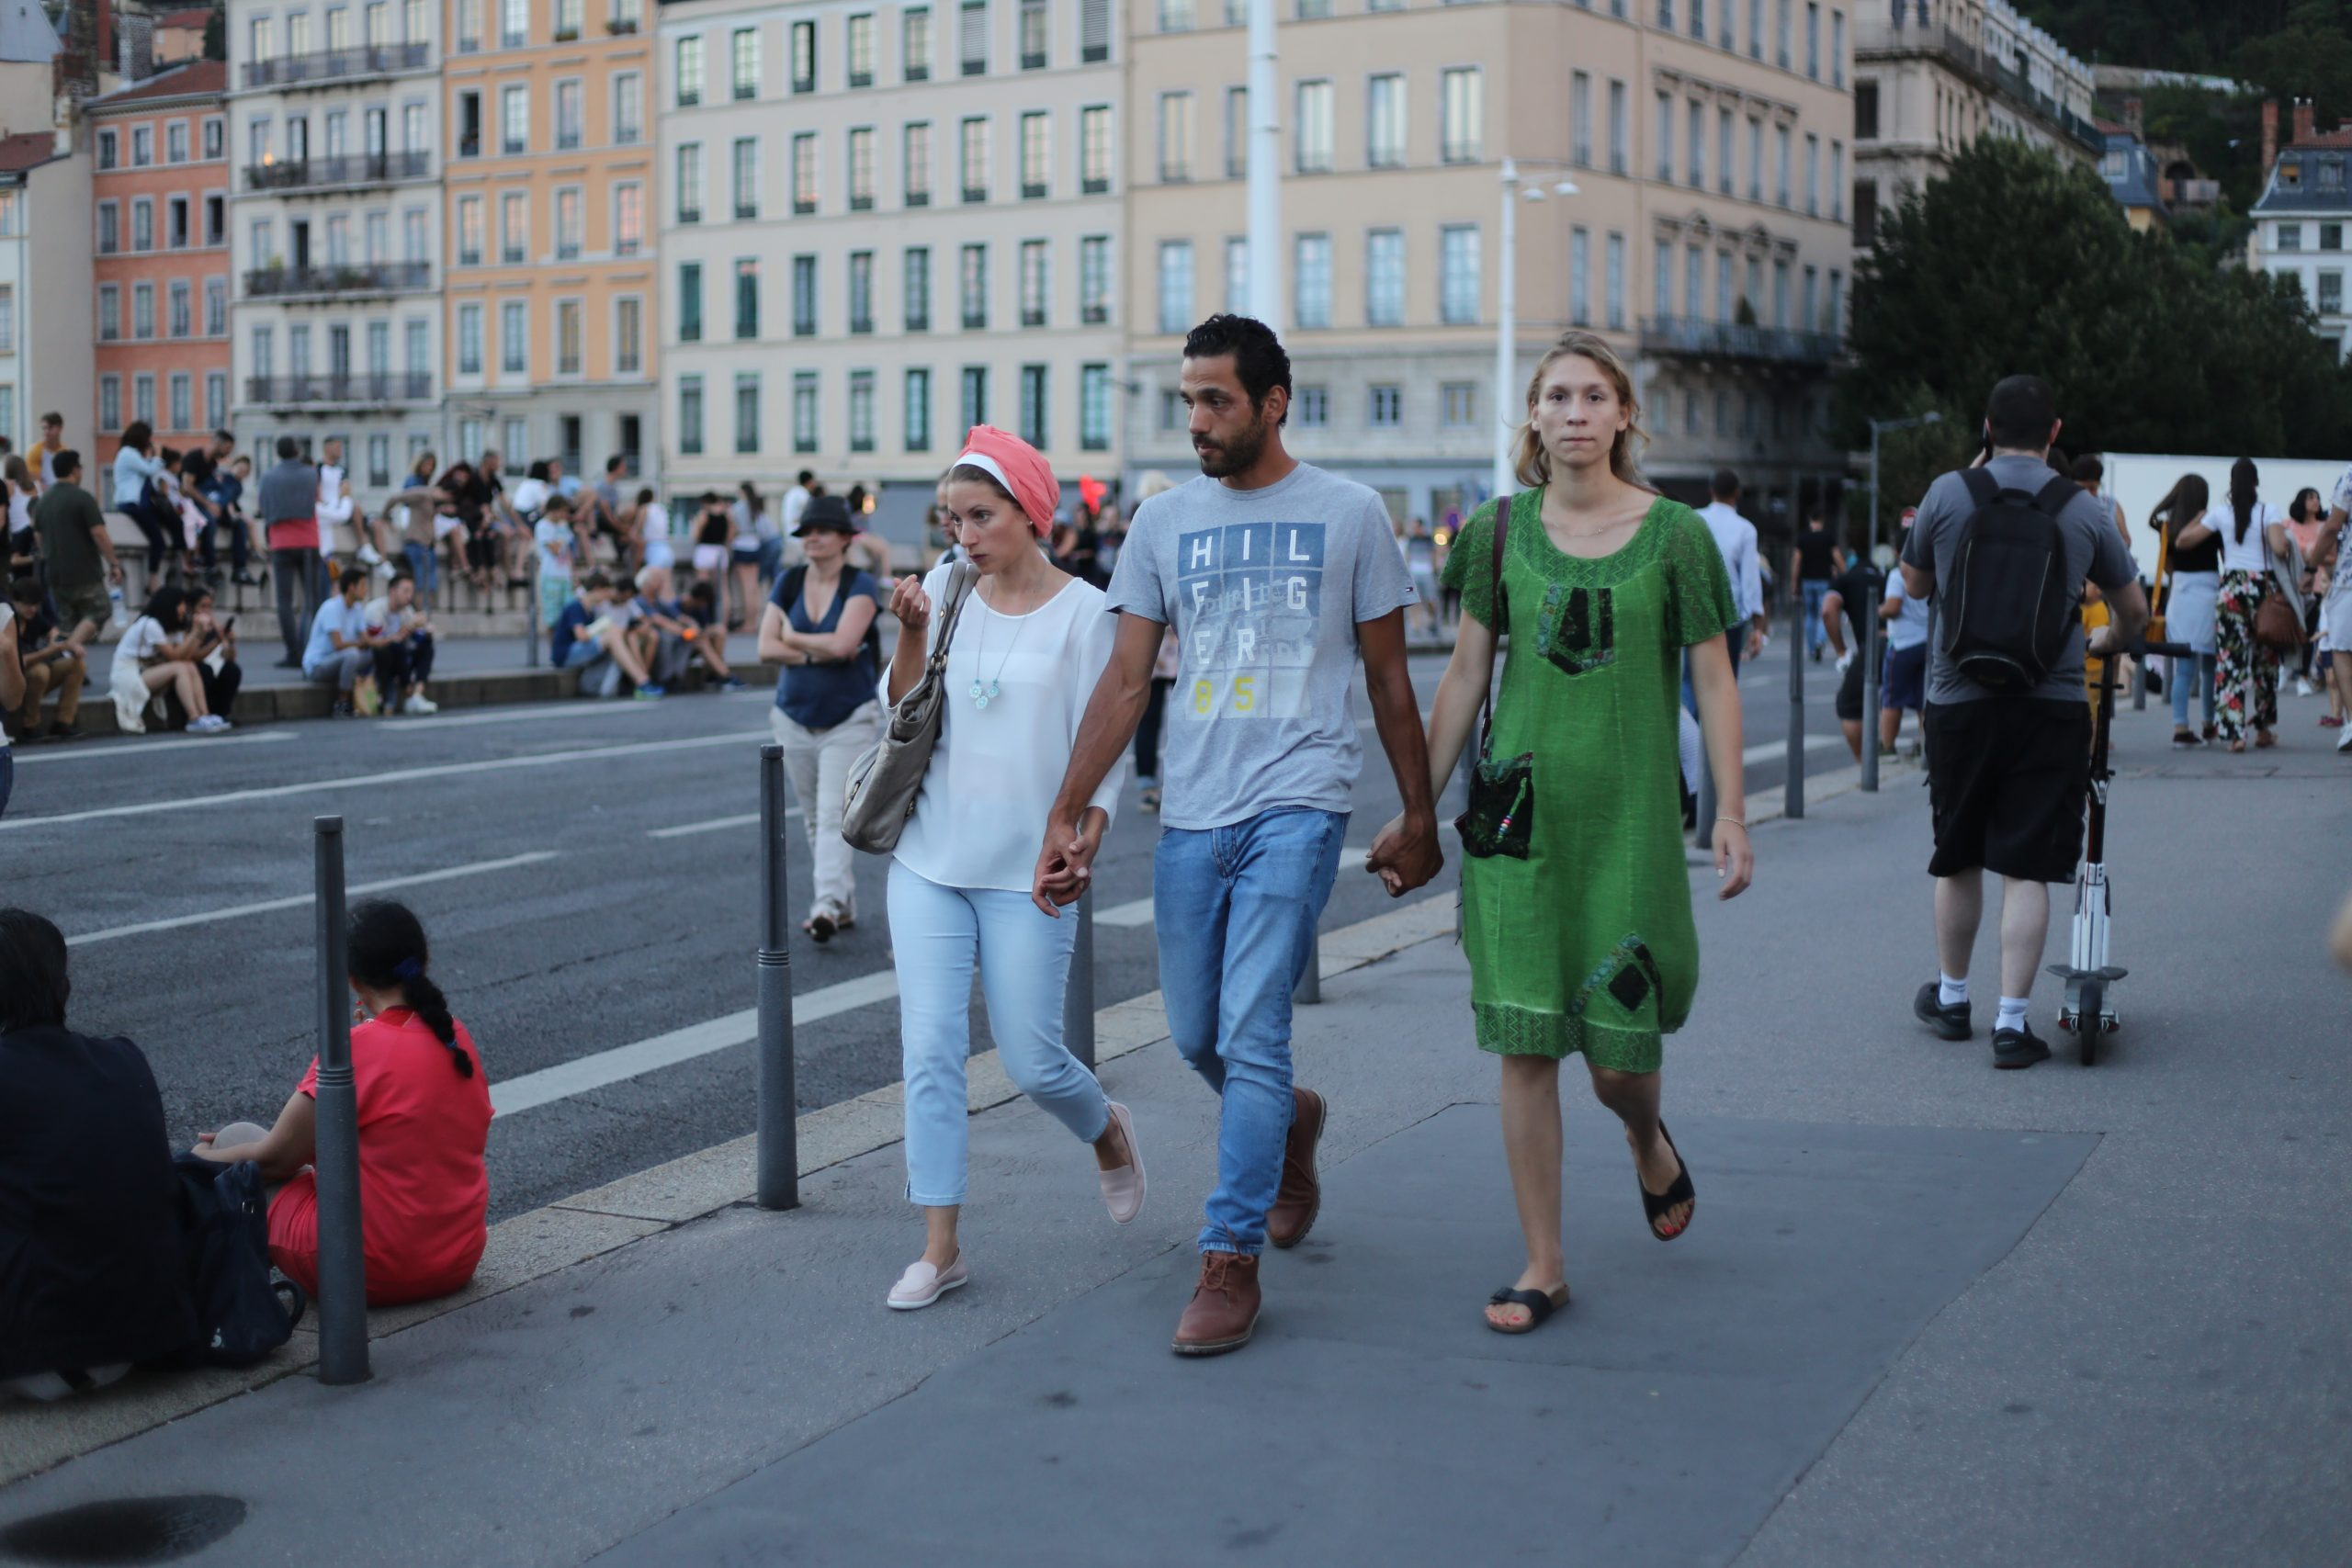 Street photography: Why does it even exist?